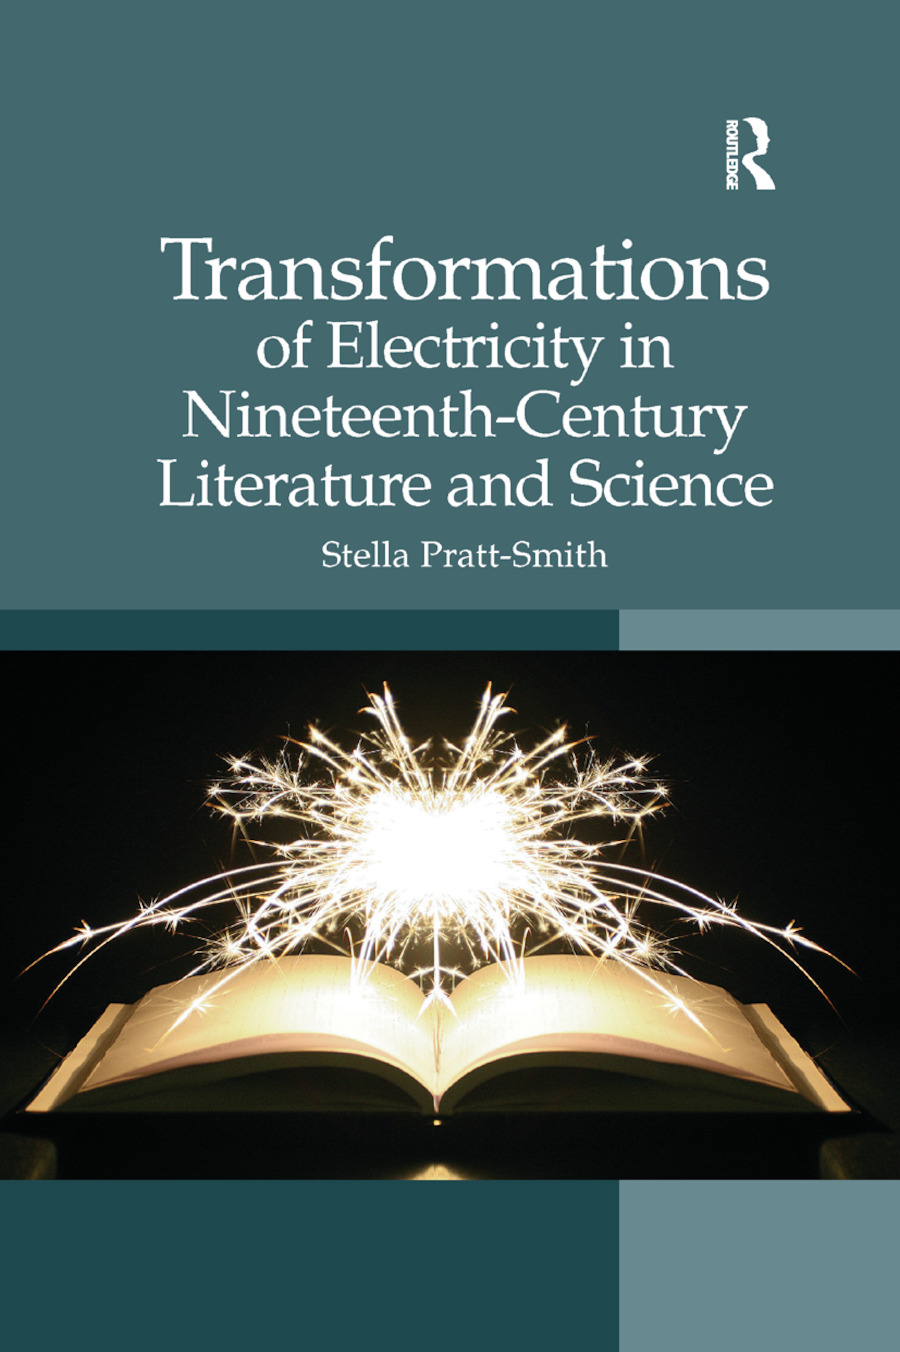 Transformations of Electricity in Nineteenth-Century Literature and Science book cover